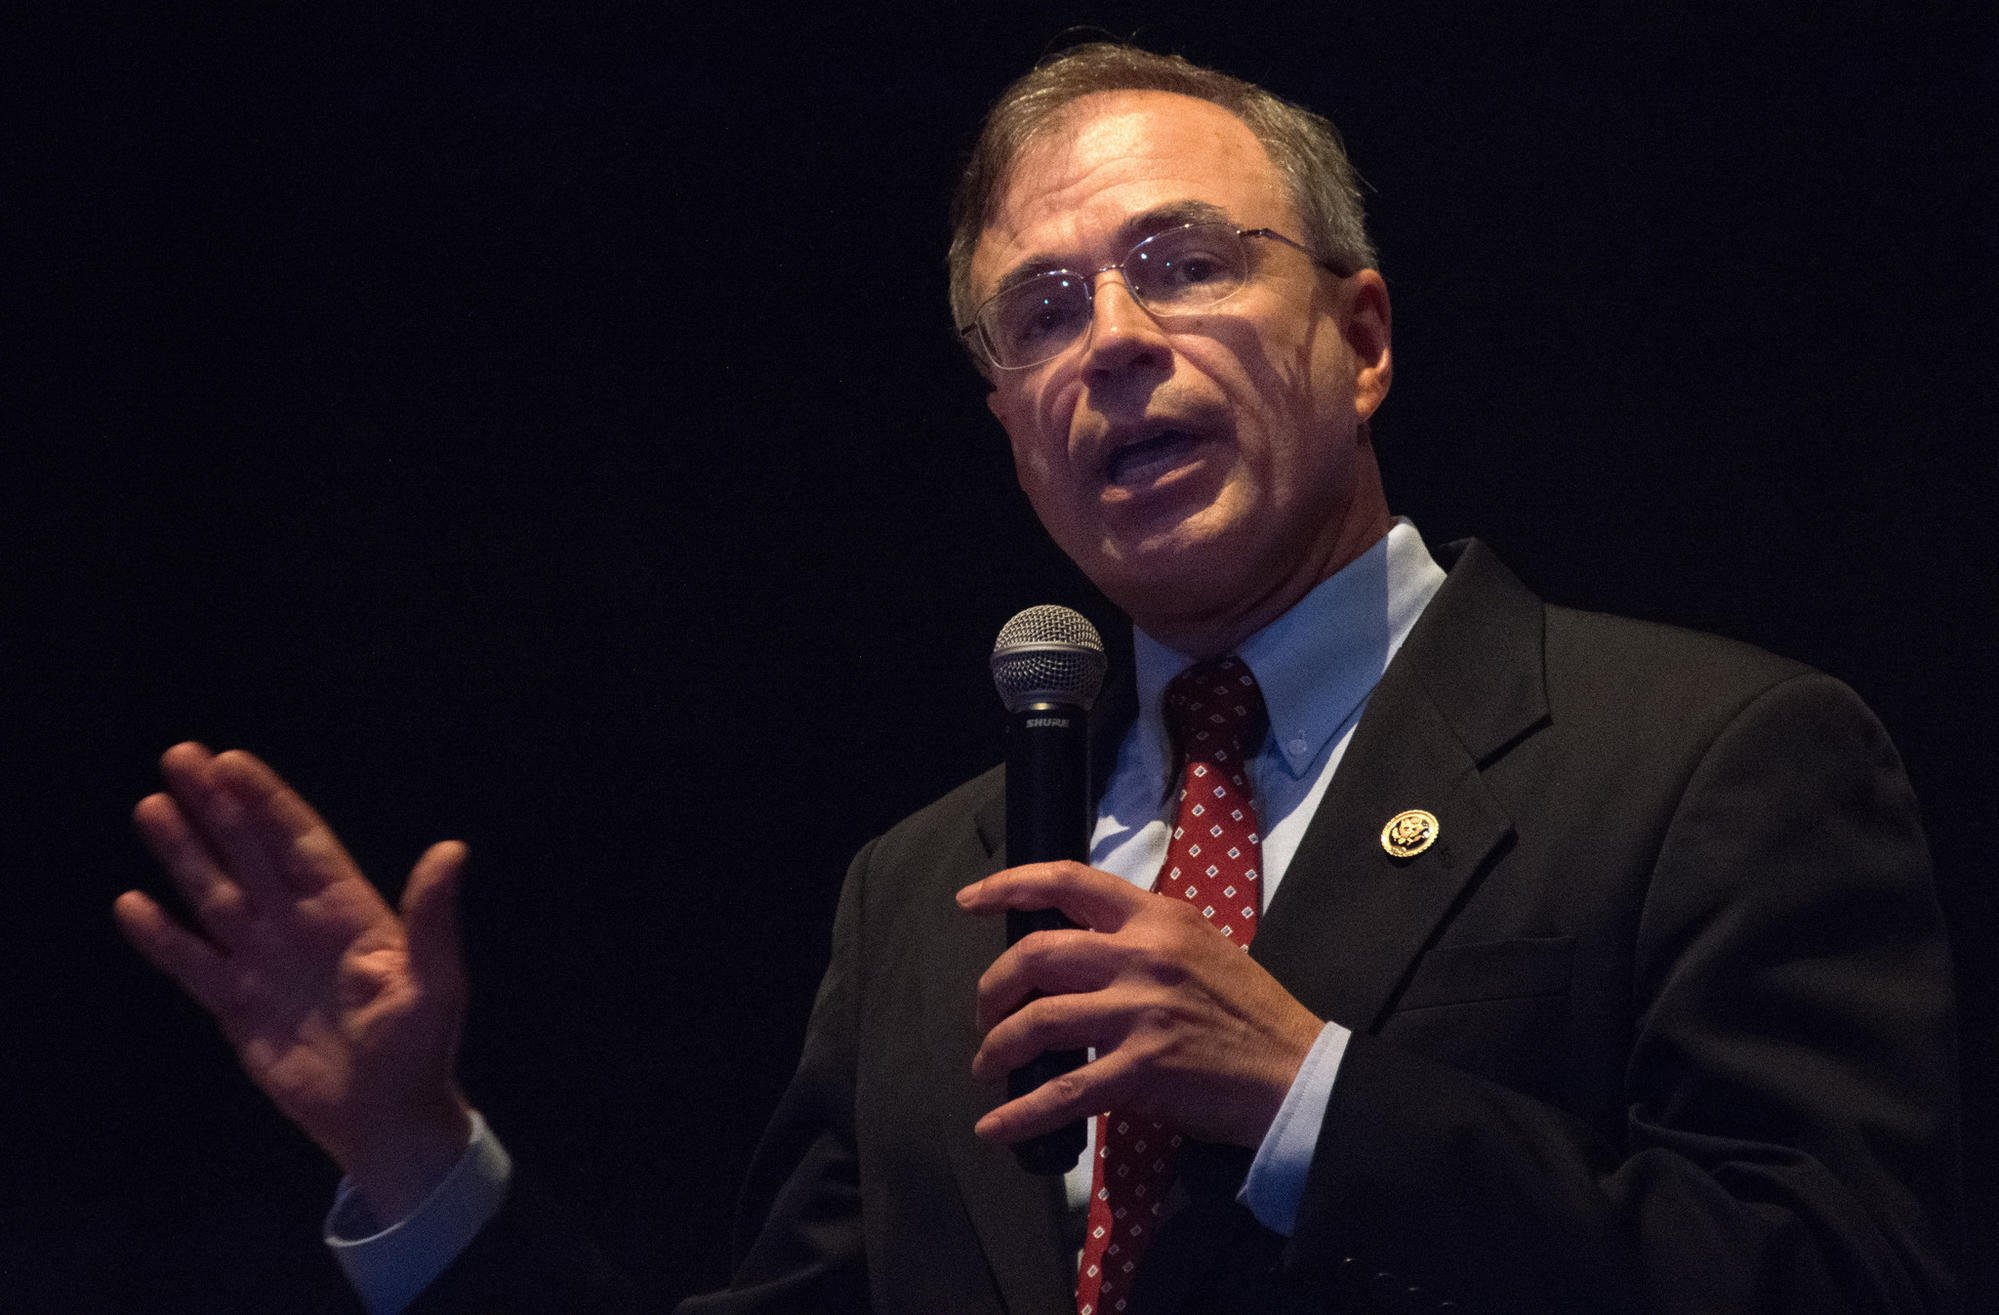 Maryland Rep. Andy Harris has become 'Public Enemy No. 1' for marijuana activists. How did it get so personal?